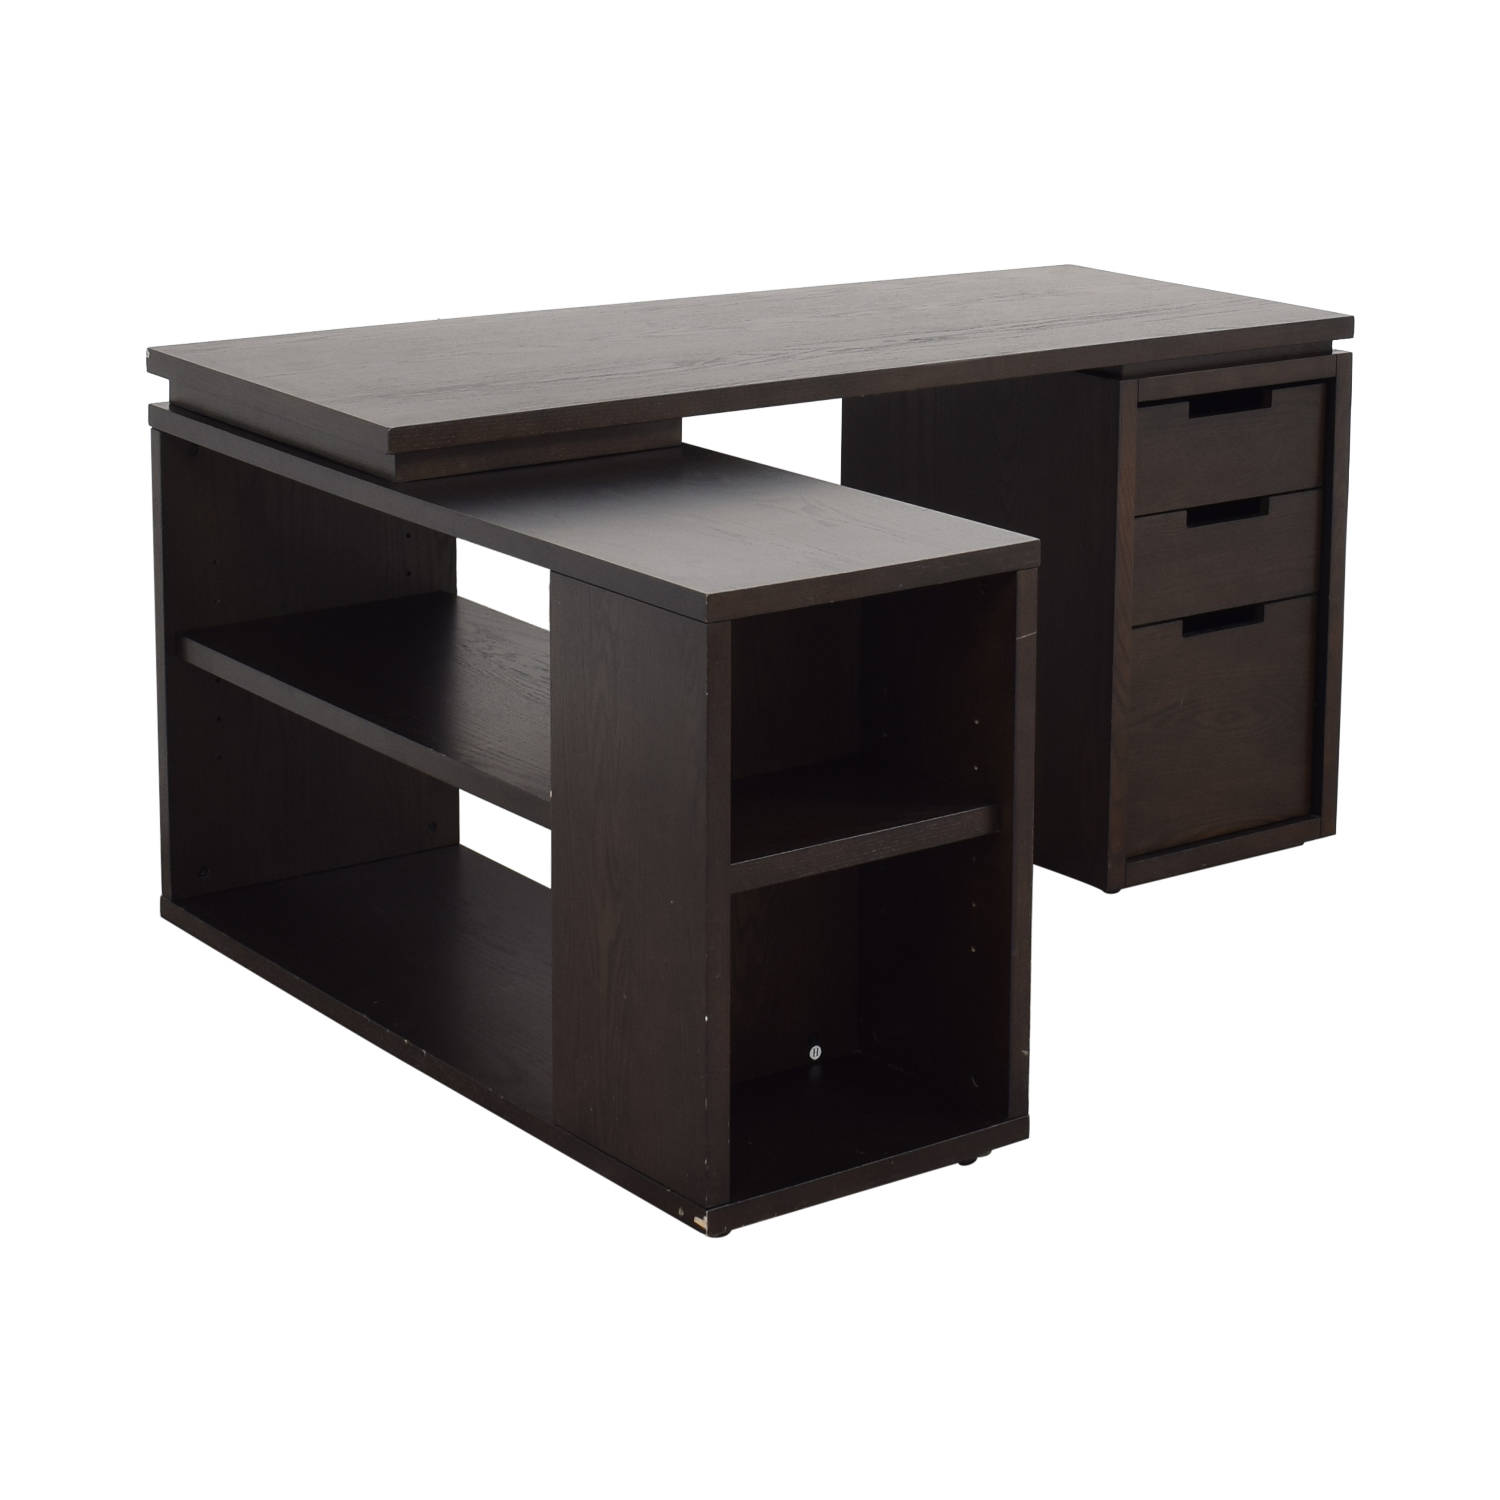 buy West Elm West Elm Modular Office L-shaped Desk and Bookcase online